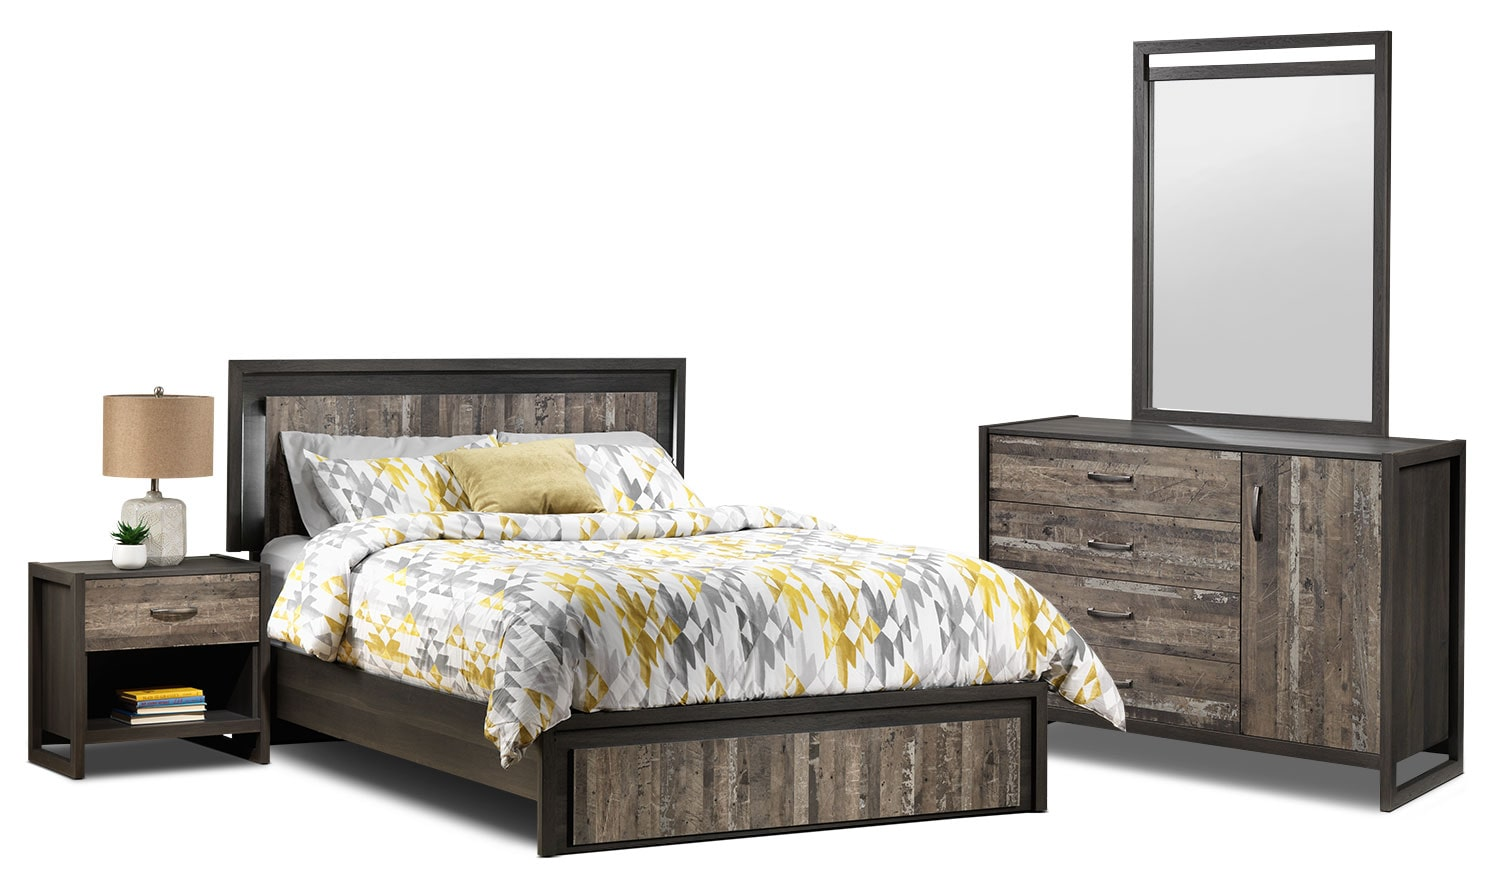 Bedroom Furniture - Hudson 5-Piece Queen Bedroom Set - Rustic Brown